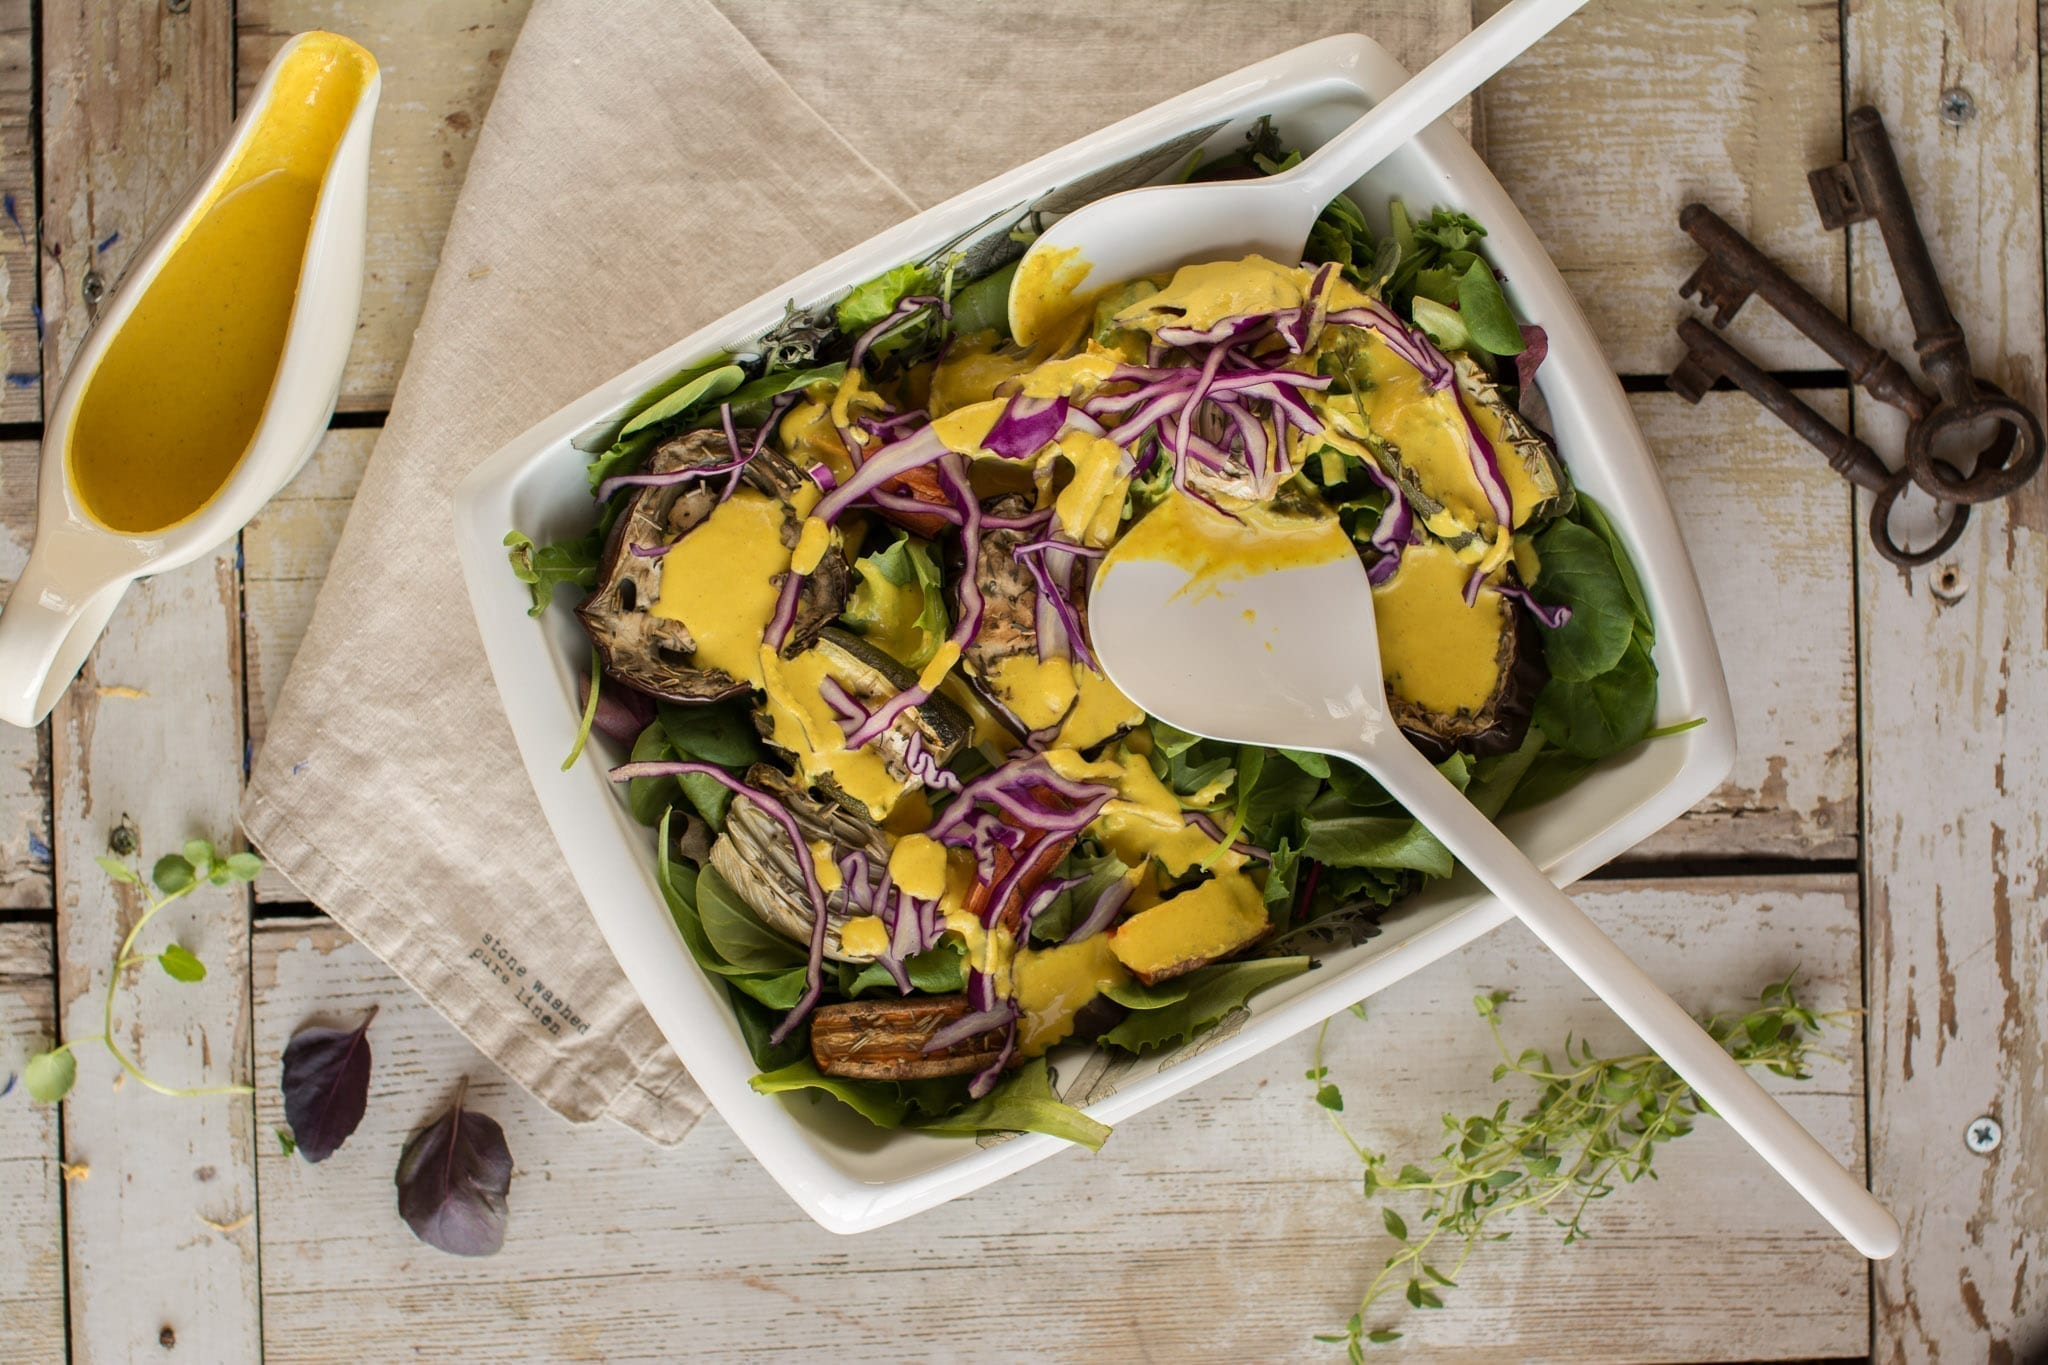 Vegan Salad with Roasted Veggies and Tahini Dressing